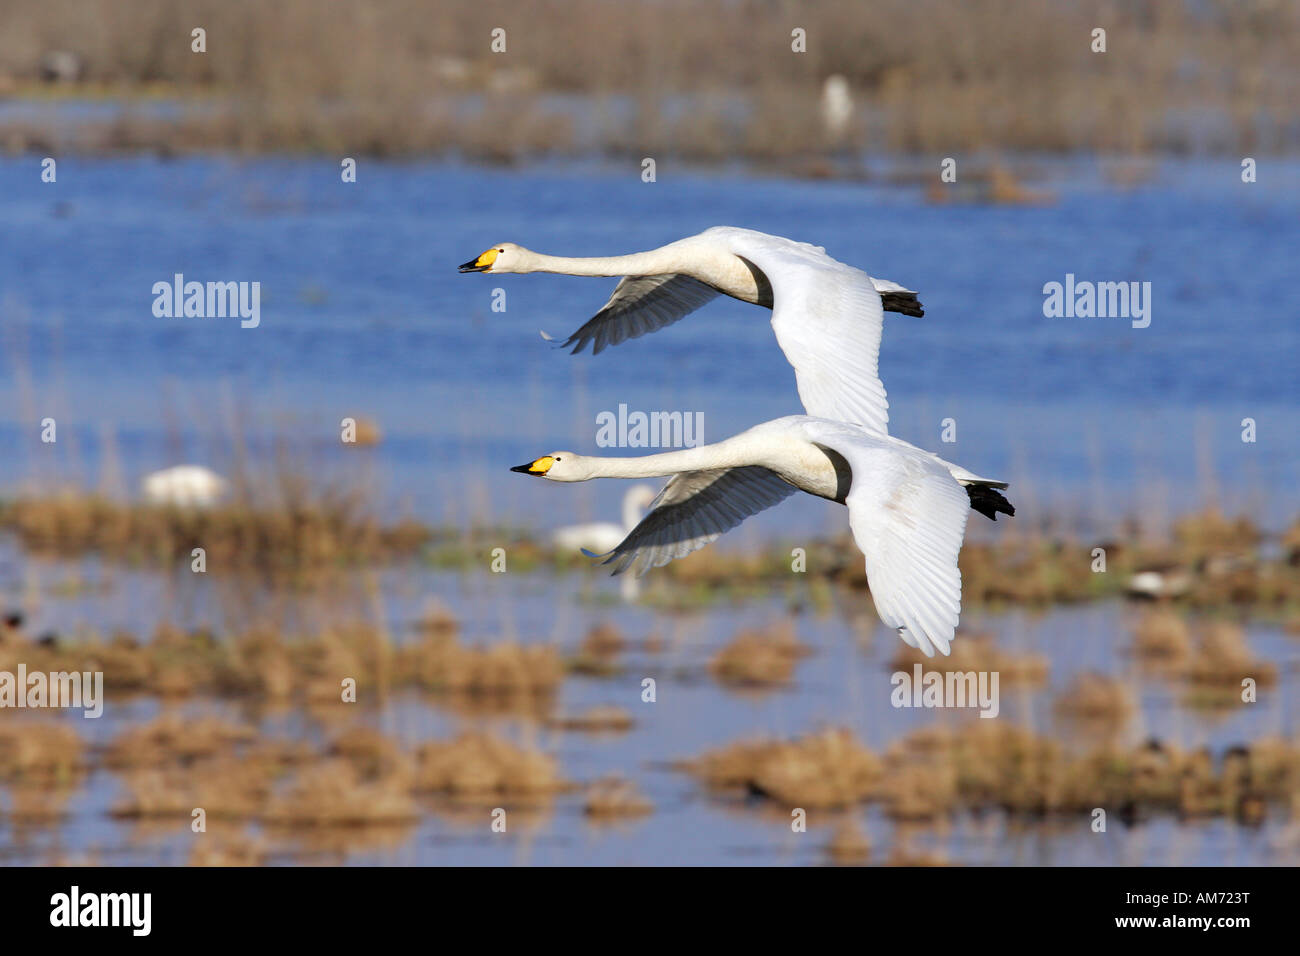 Couple of flying whooper swans - whooper swan (Cygnus cygnus) Stock Photo